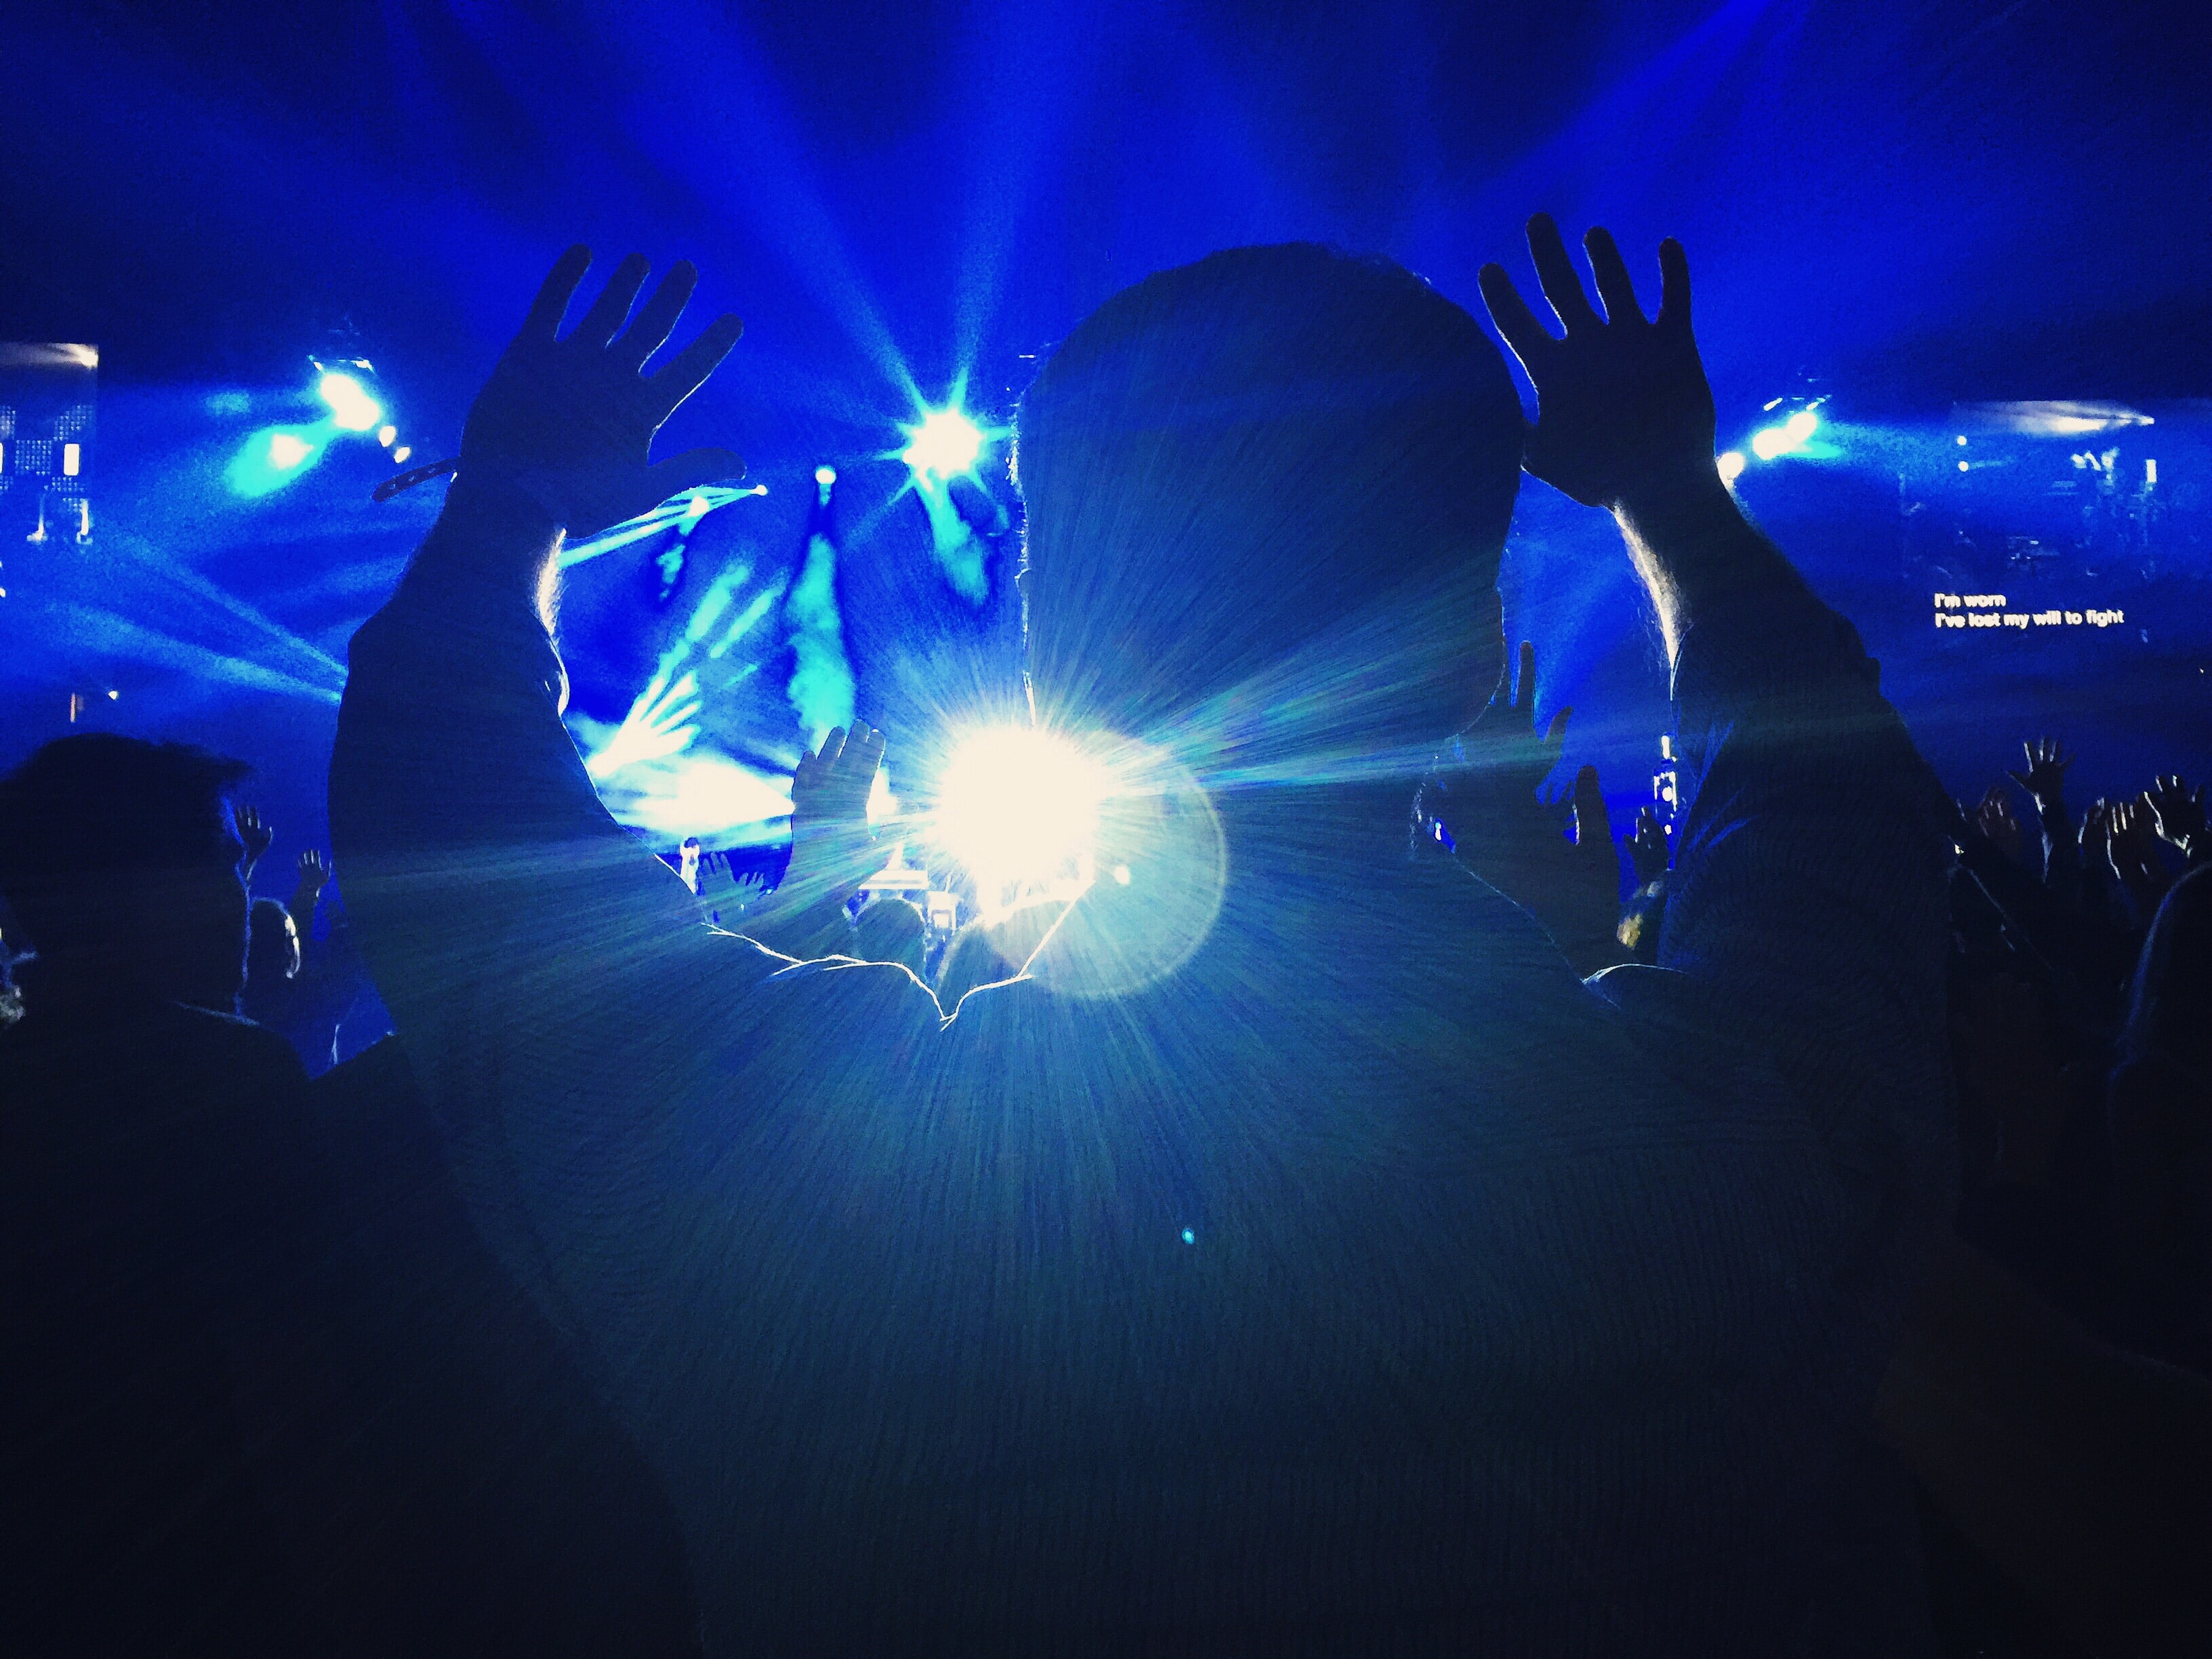 The silhouette of a person at a concert throwing their hands up in the blue light